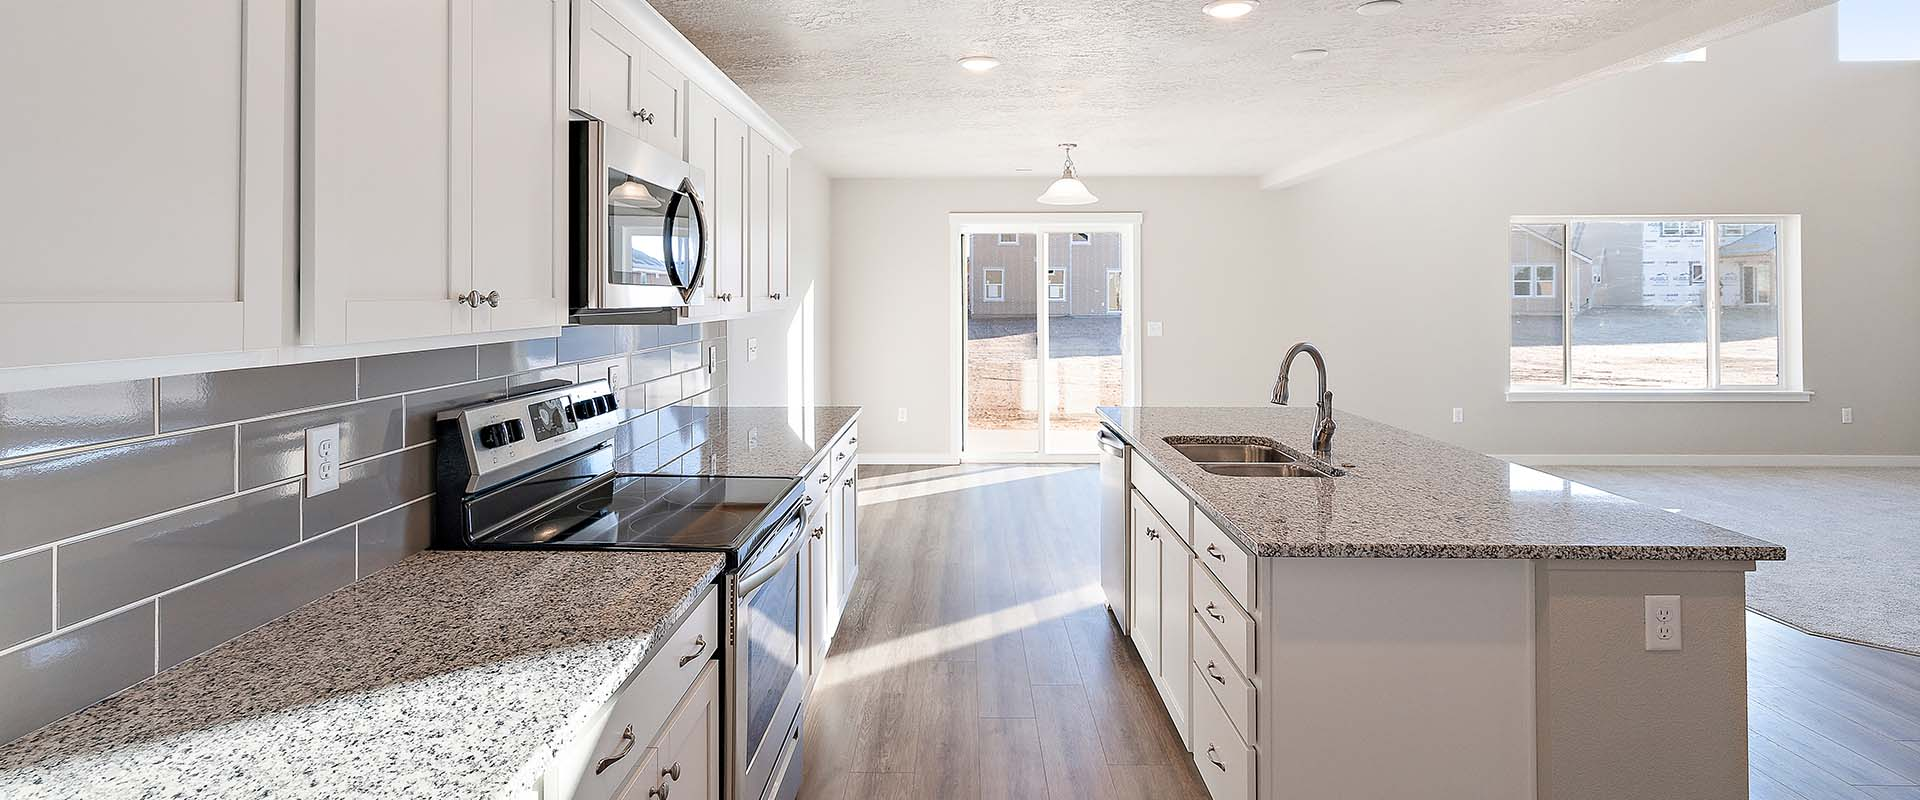 Topaz-Kitchen-new-homes-boise-idaho-hubble-homes.jpg